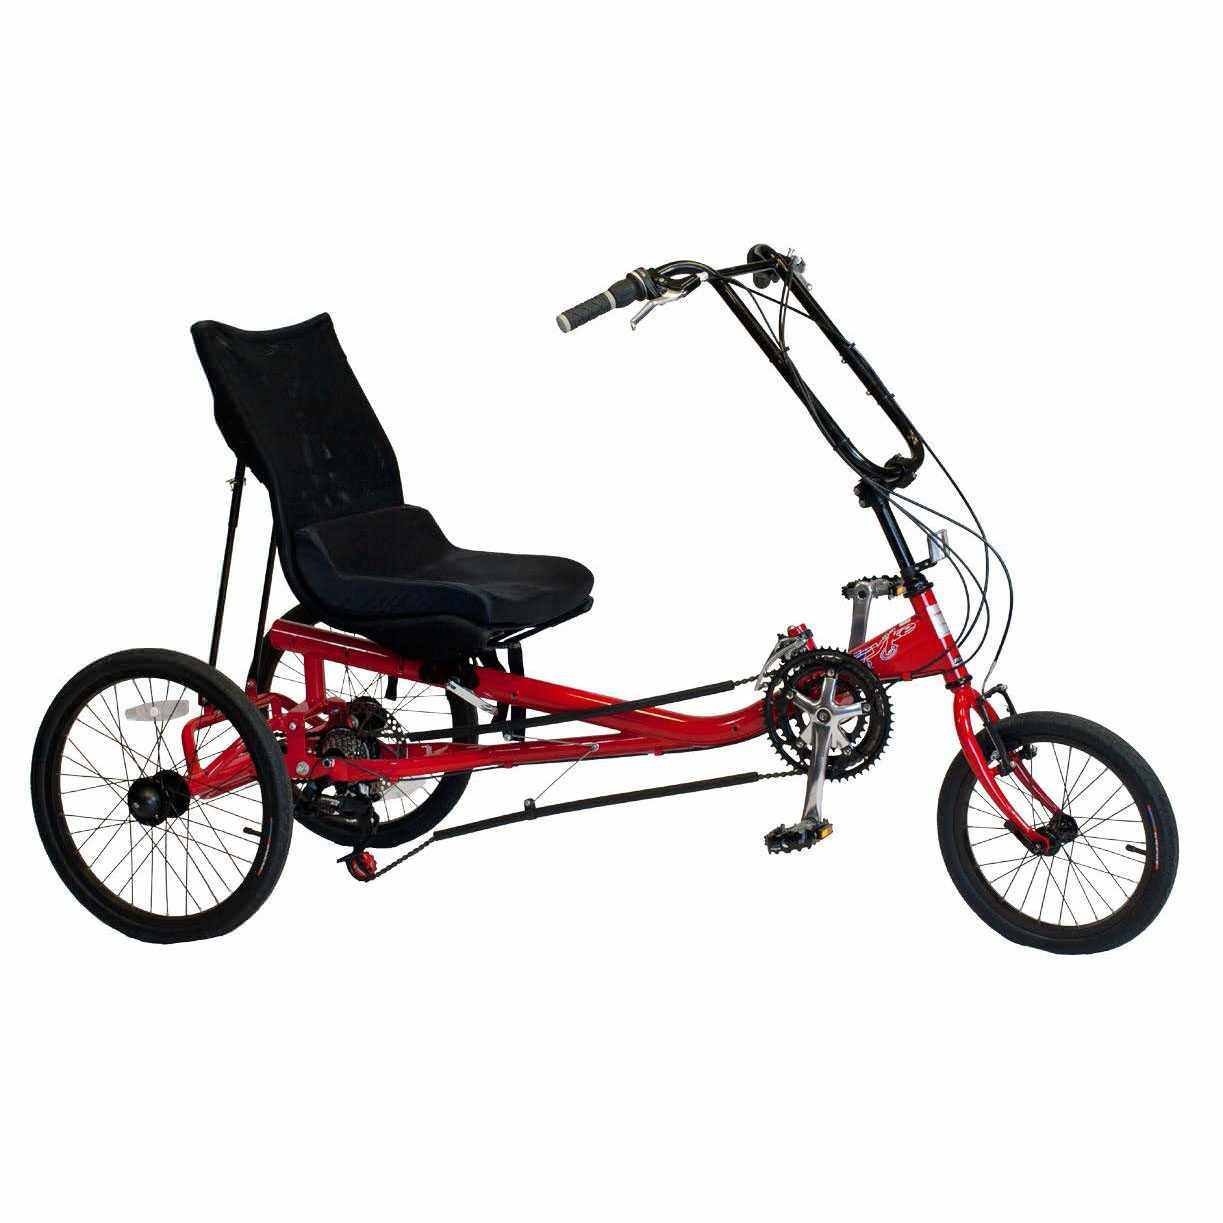 Amtryke Jt-2000 Tricycle With Recumbent Seat | Amtryke Tricycles